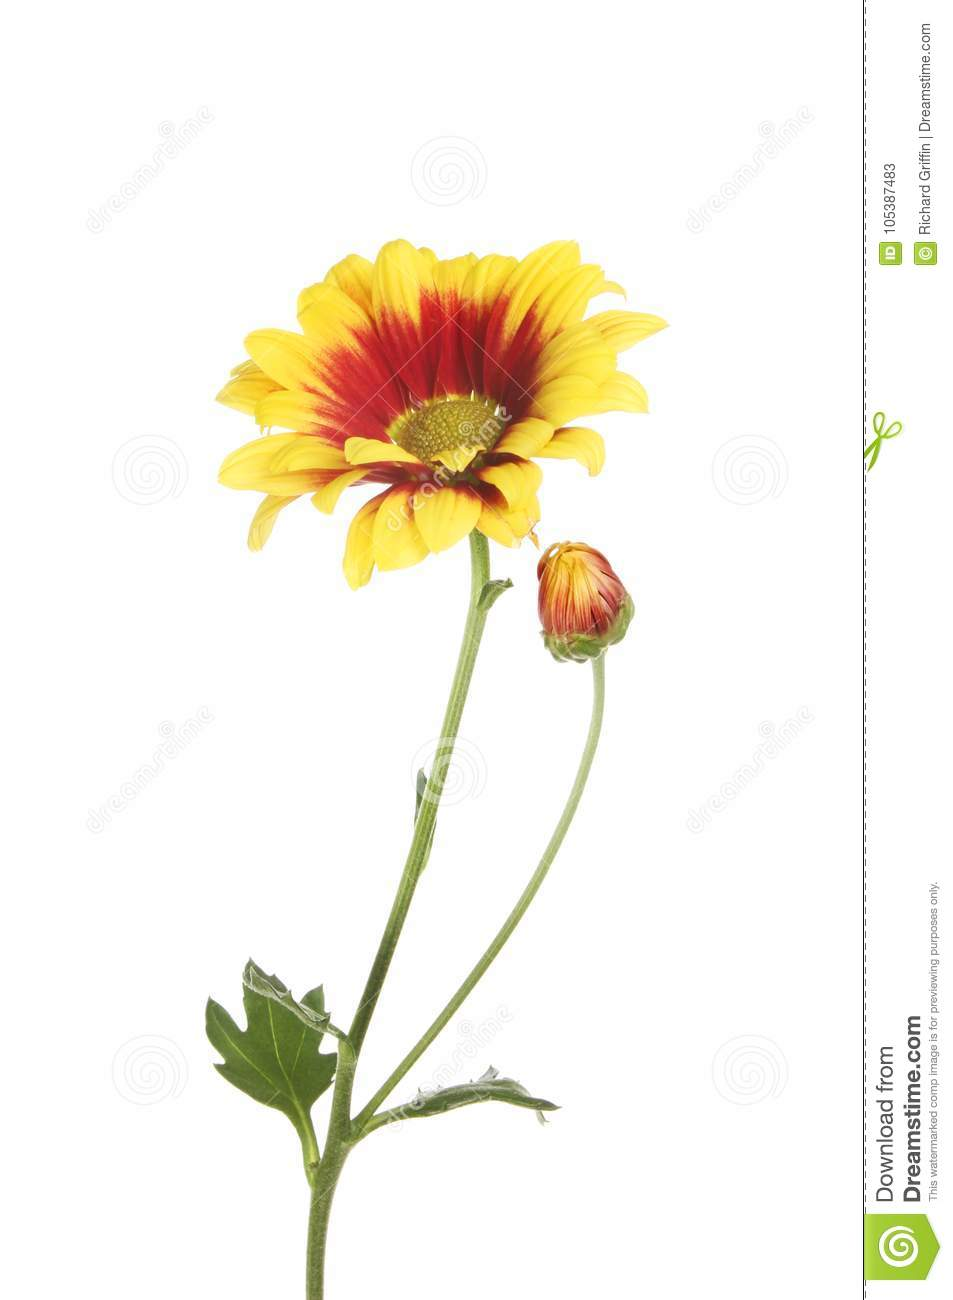 Chrysanthemum flower and bud